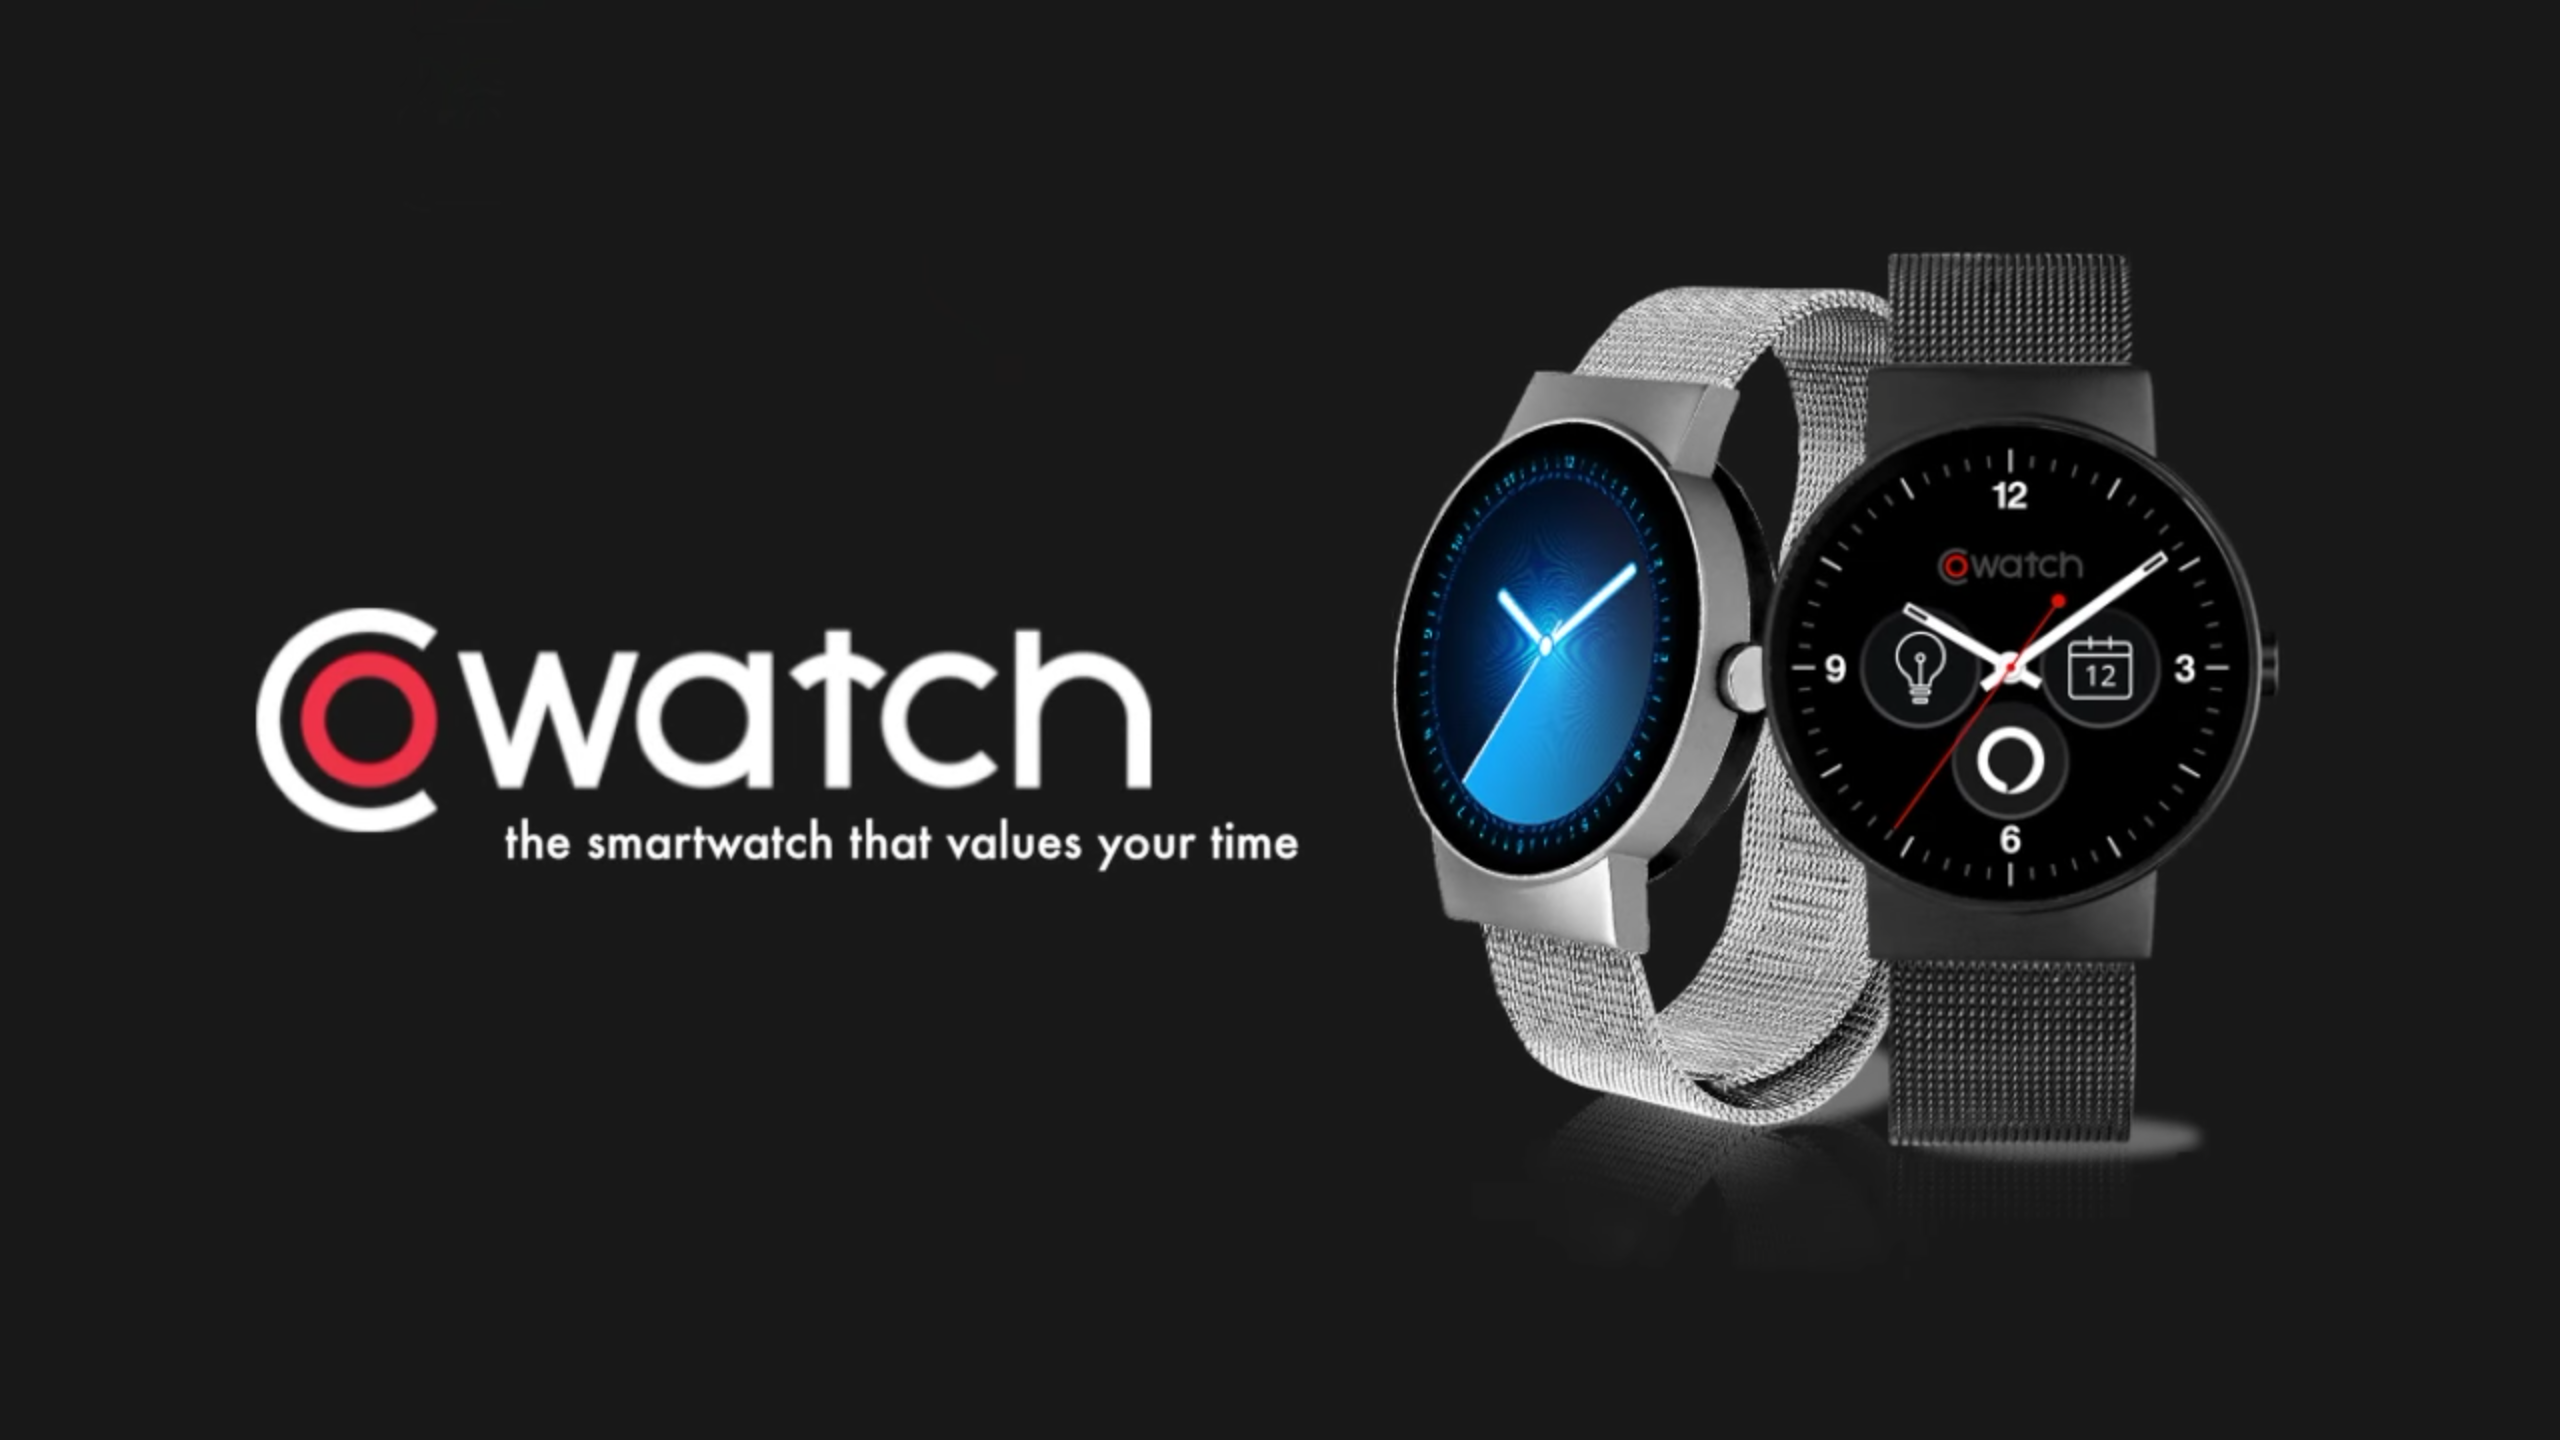 CoWatch Brings Amazon's Alexa To Your Wrist, Features ...